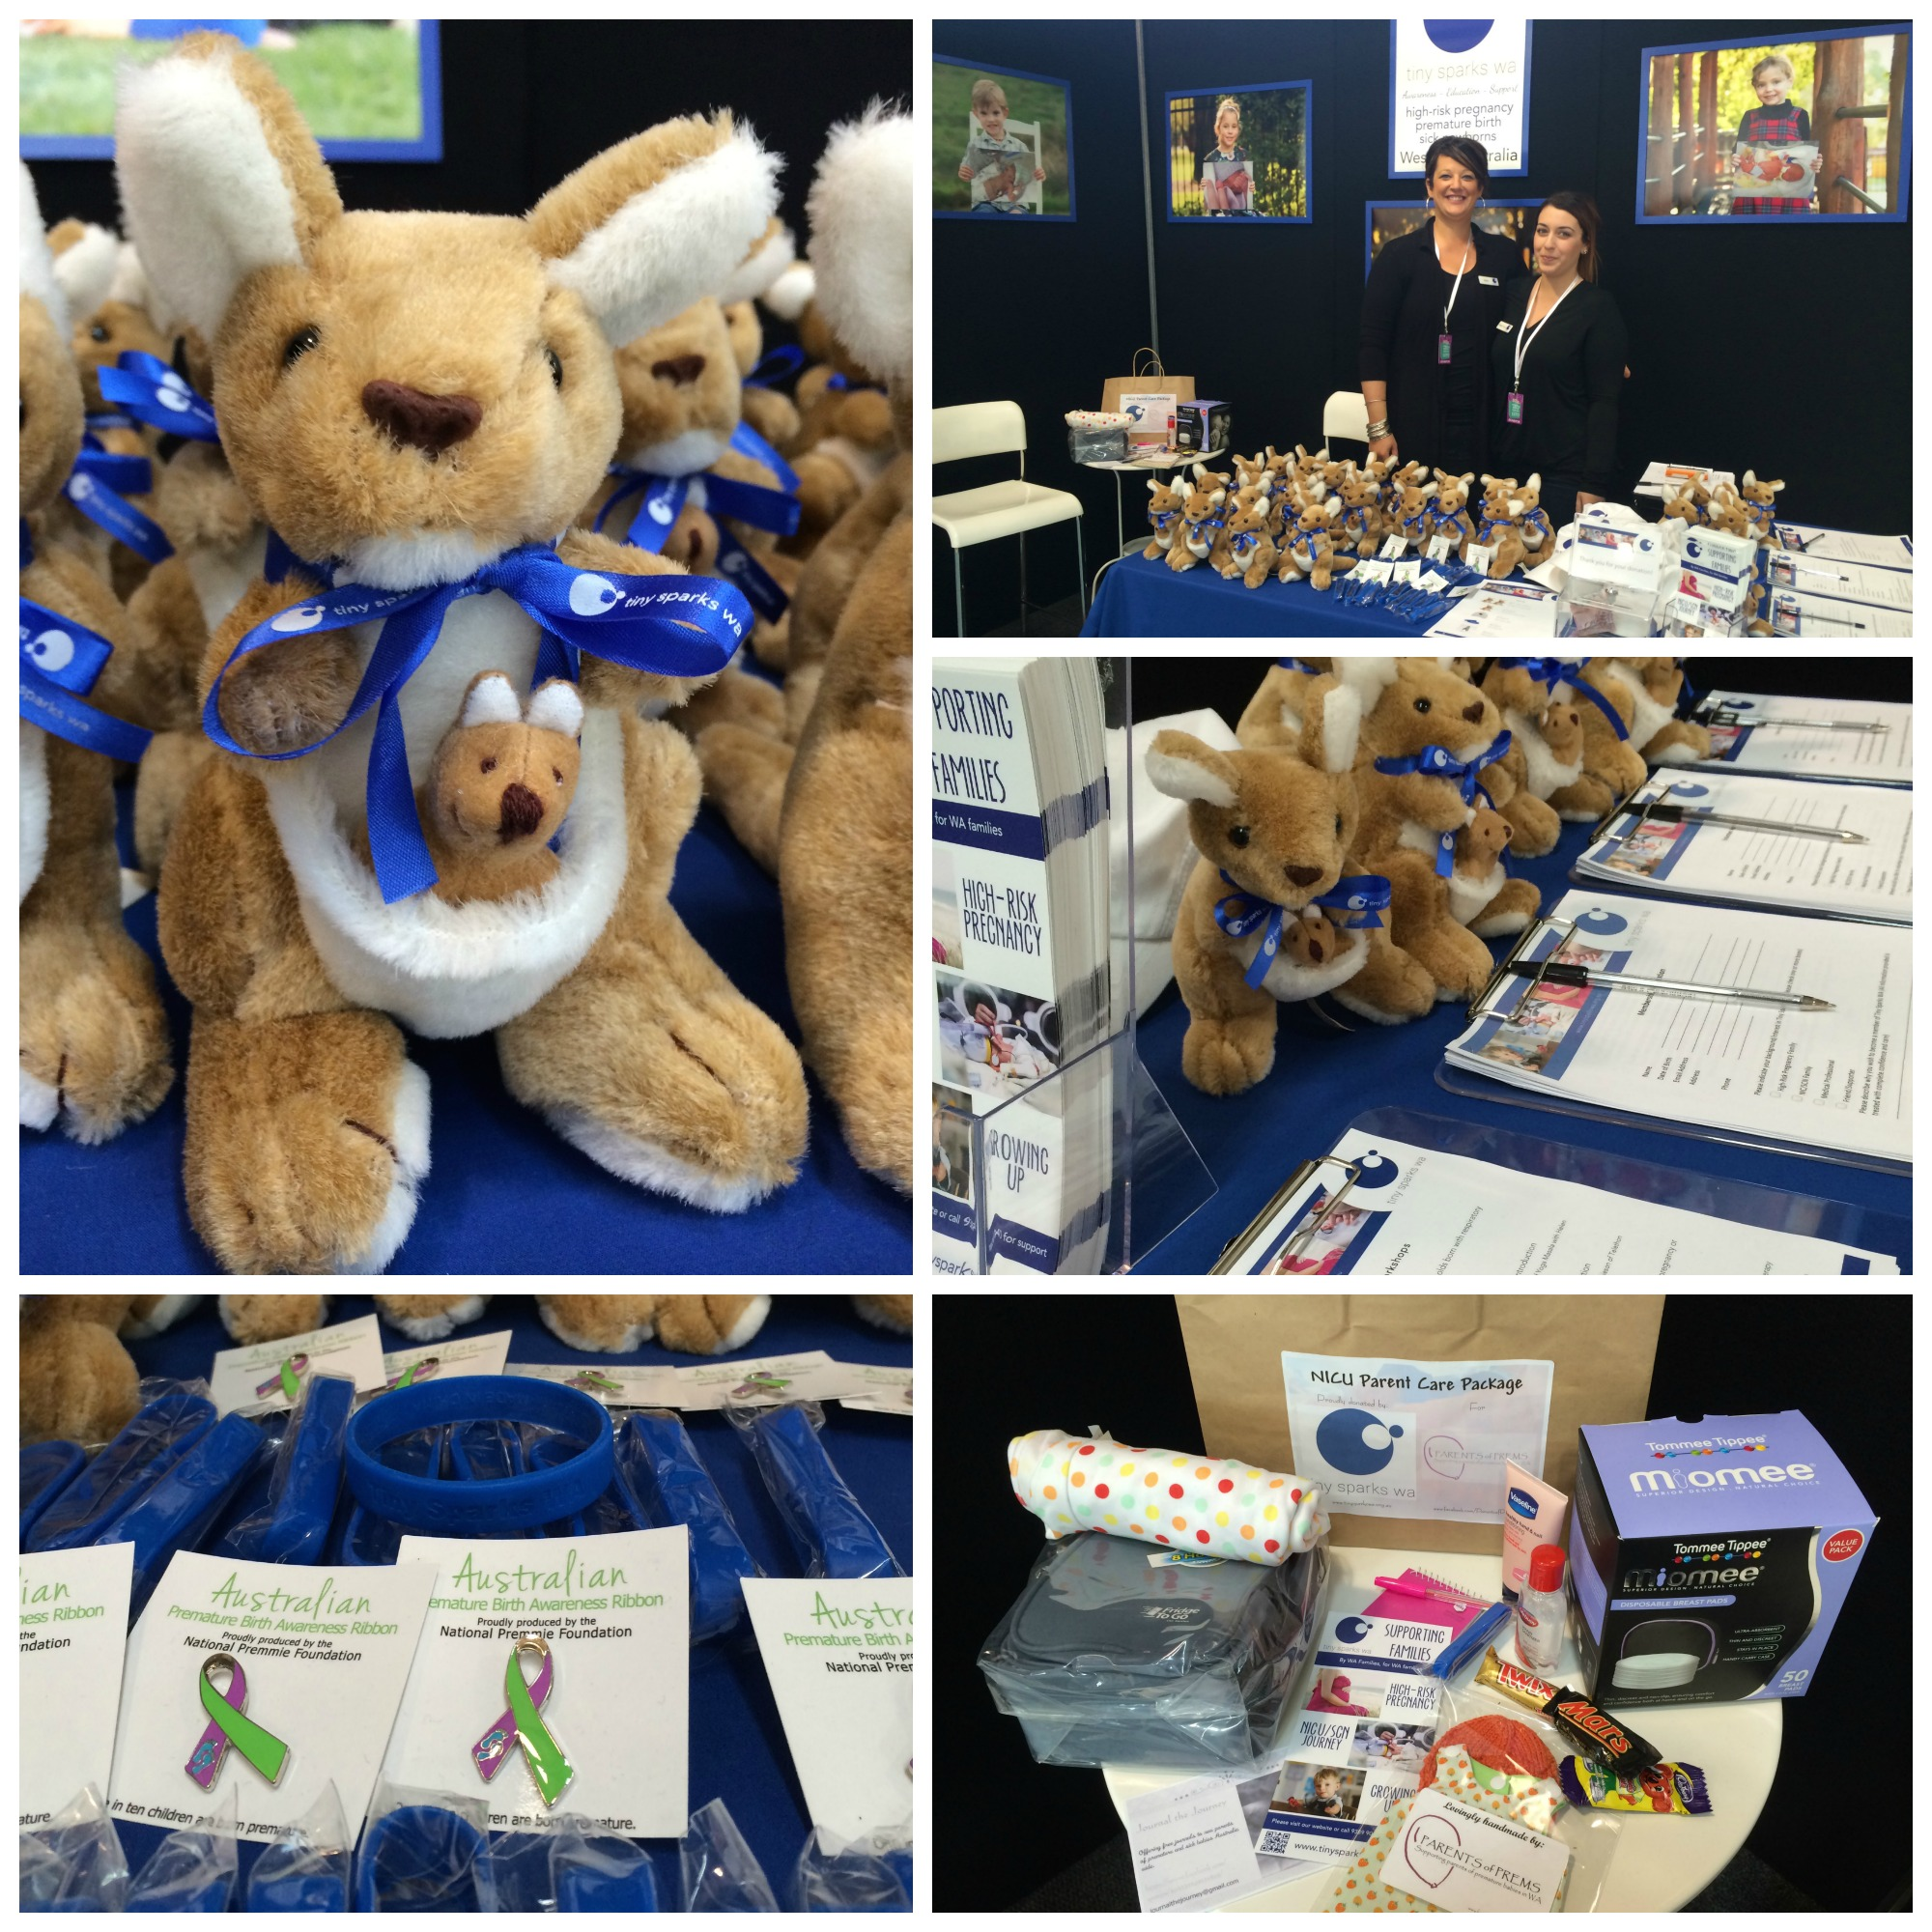 Pregnancy Babies and Children's Expo 2014